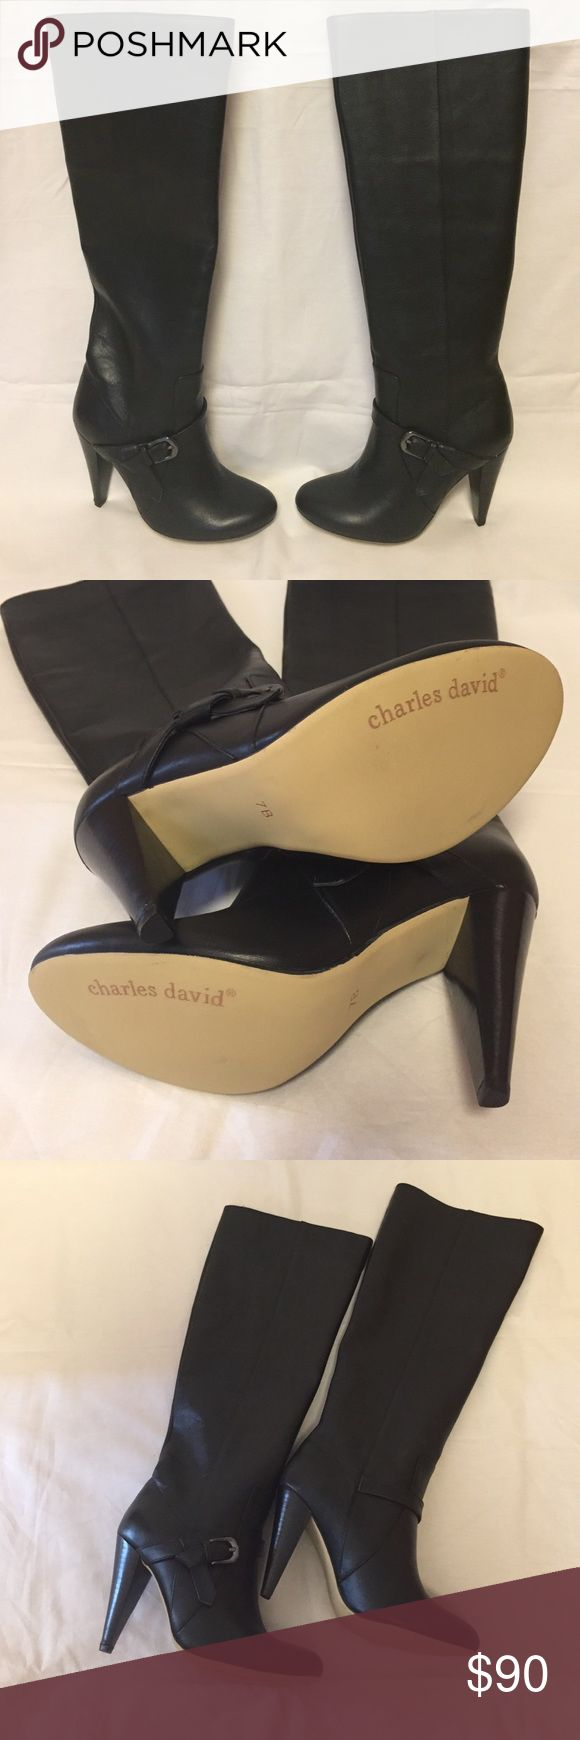 """Charles David """"Vela"""" boots Black knee boots.  4"""" heel. Right heel has small flaw. Never worn. New in box, although to ship the box might put it over 5 lbs. Charles David Shoes Heeled Boots"""